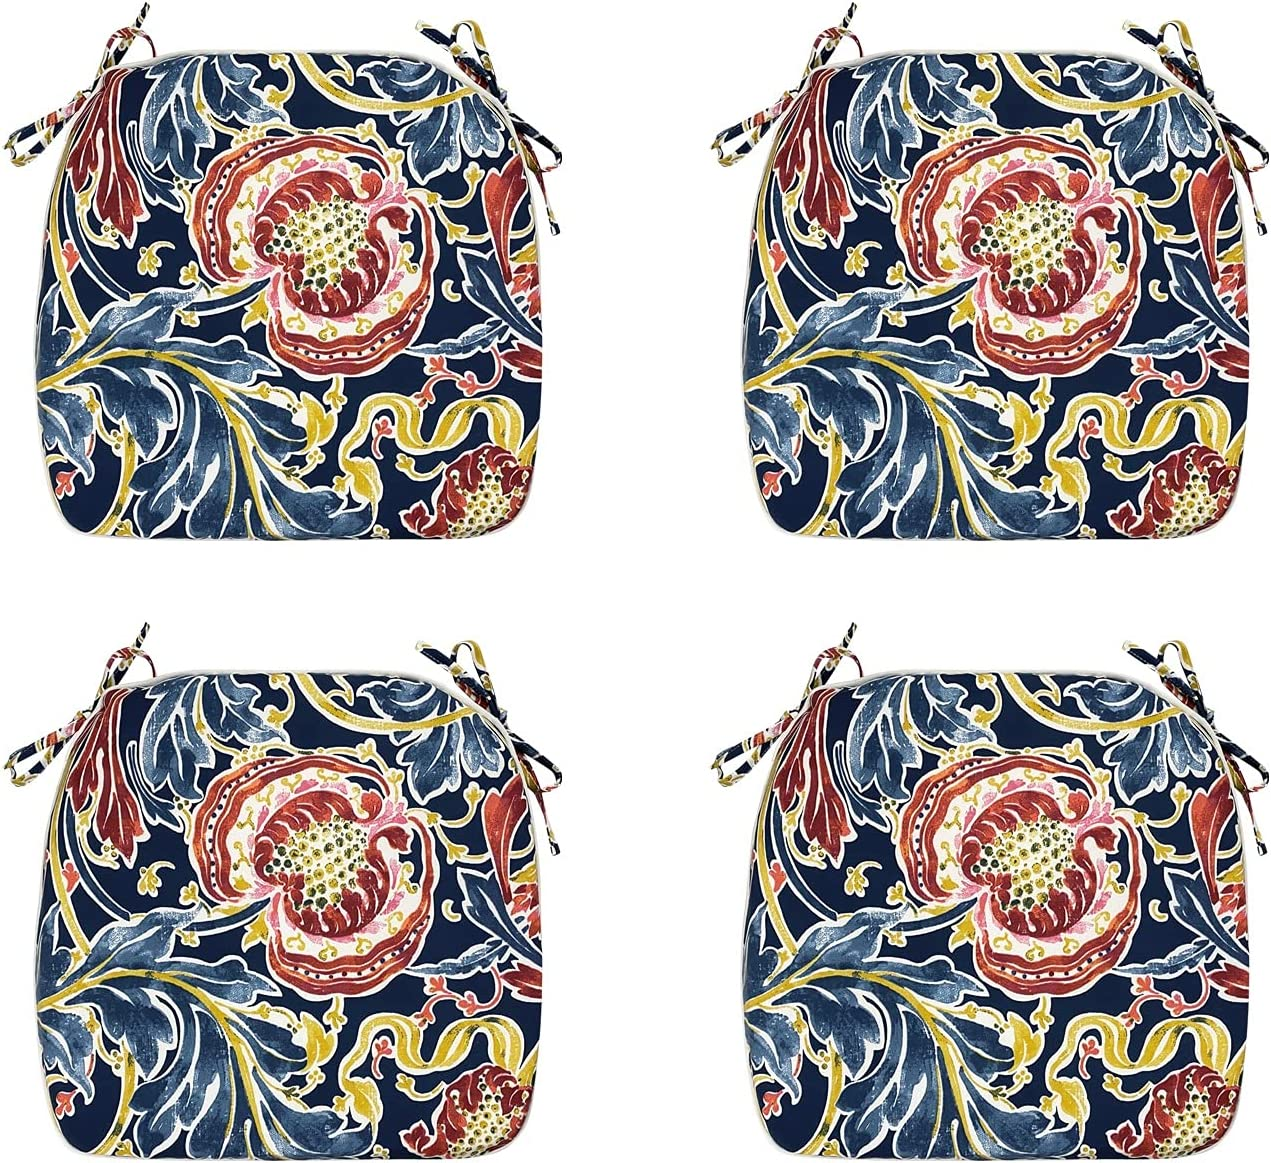 FBTS Prime Outdoor Chair Cushions Set of 4 18x19 Inch Patio Seat Cushions Navy Paisley Square Chair Pads for Outdoor Patio Furniture Garden Home Office